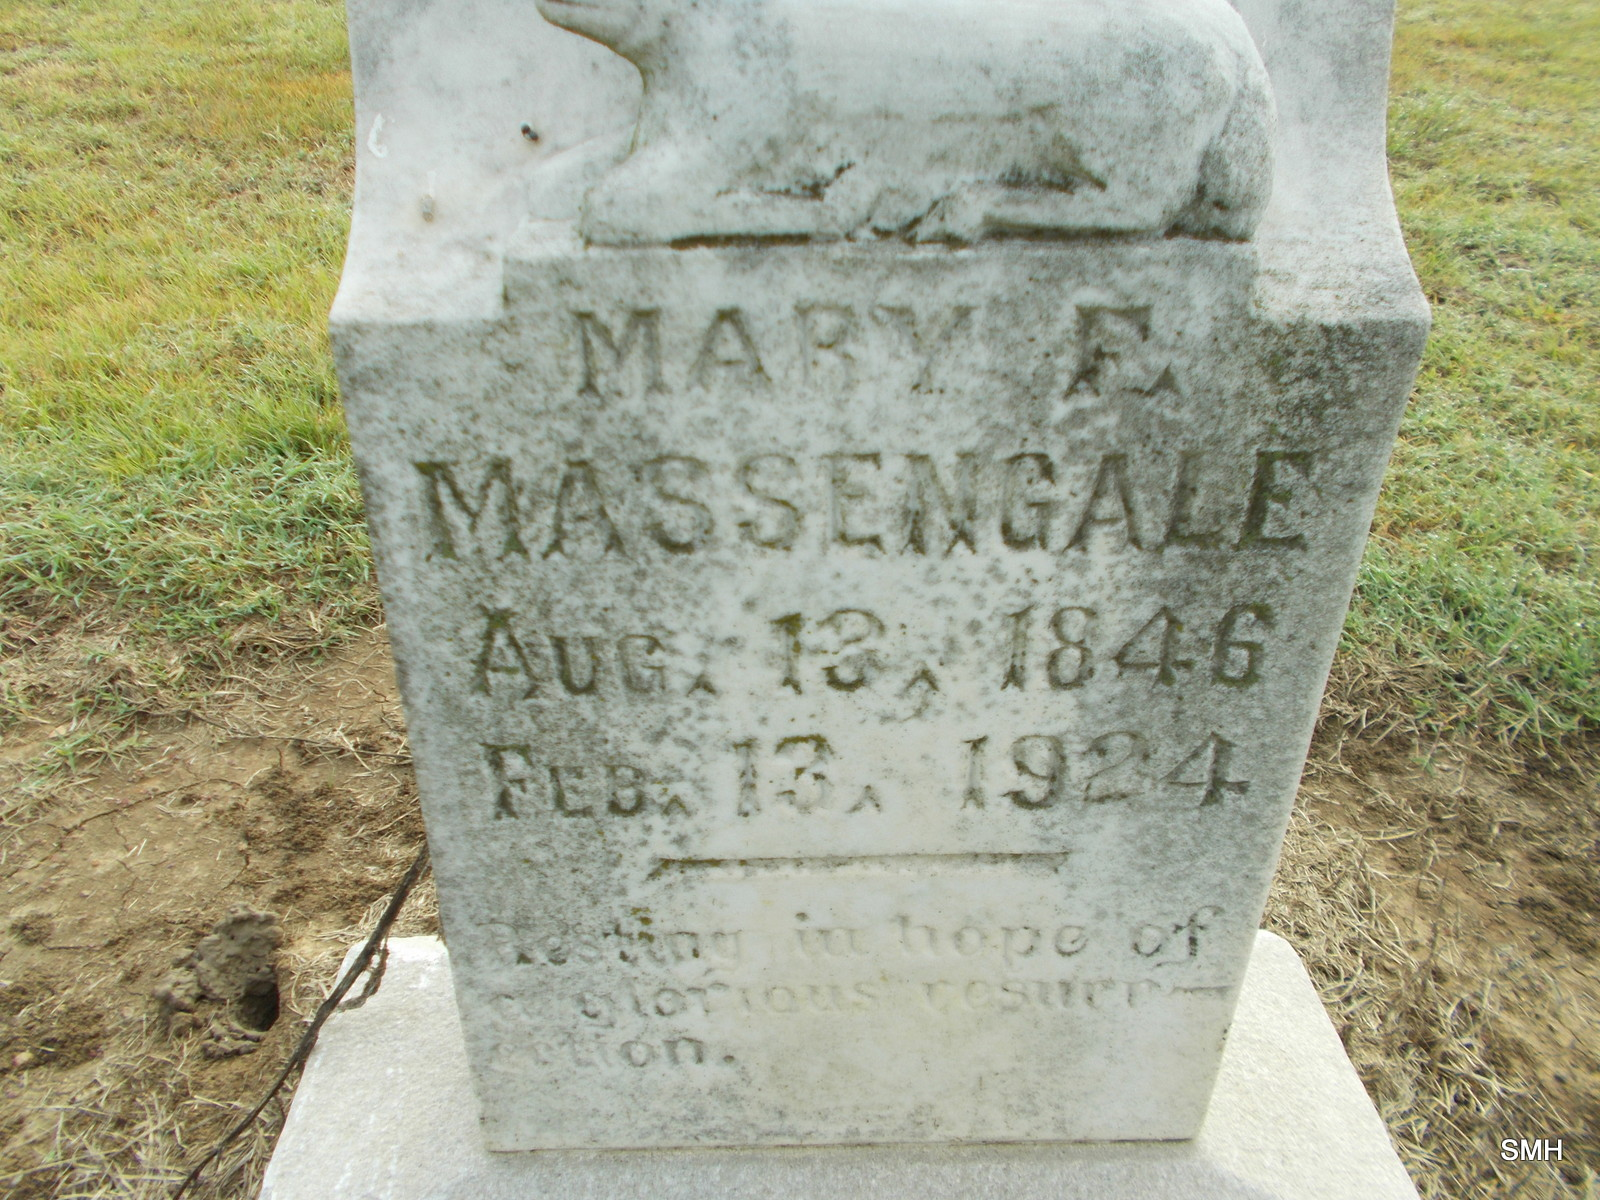 Mary Fletcher Massengale